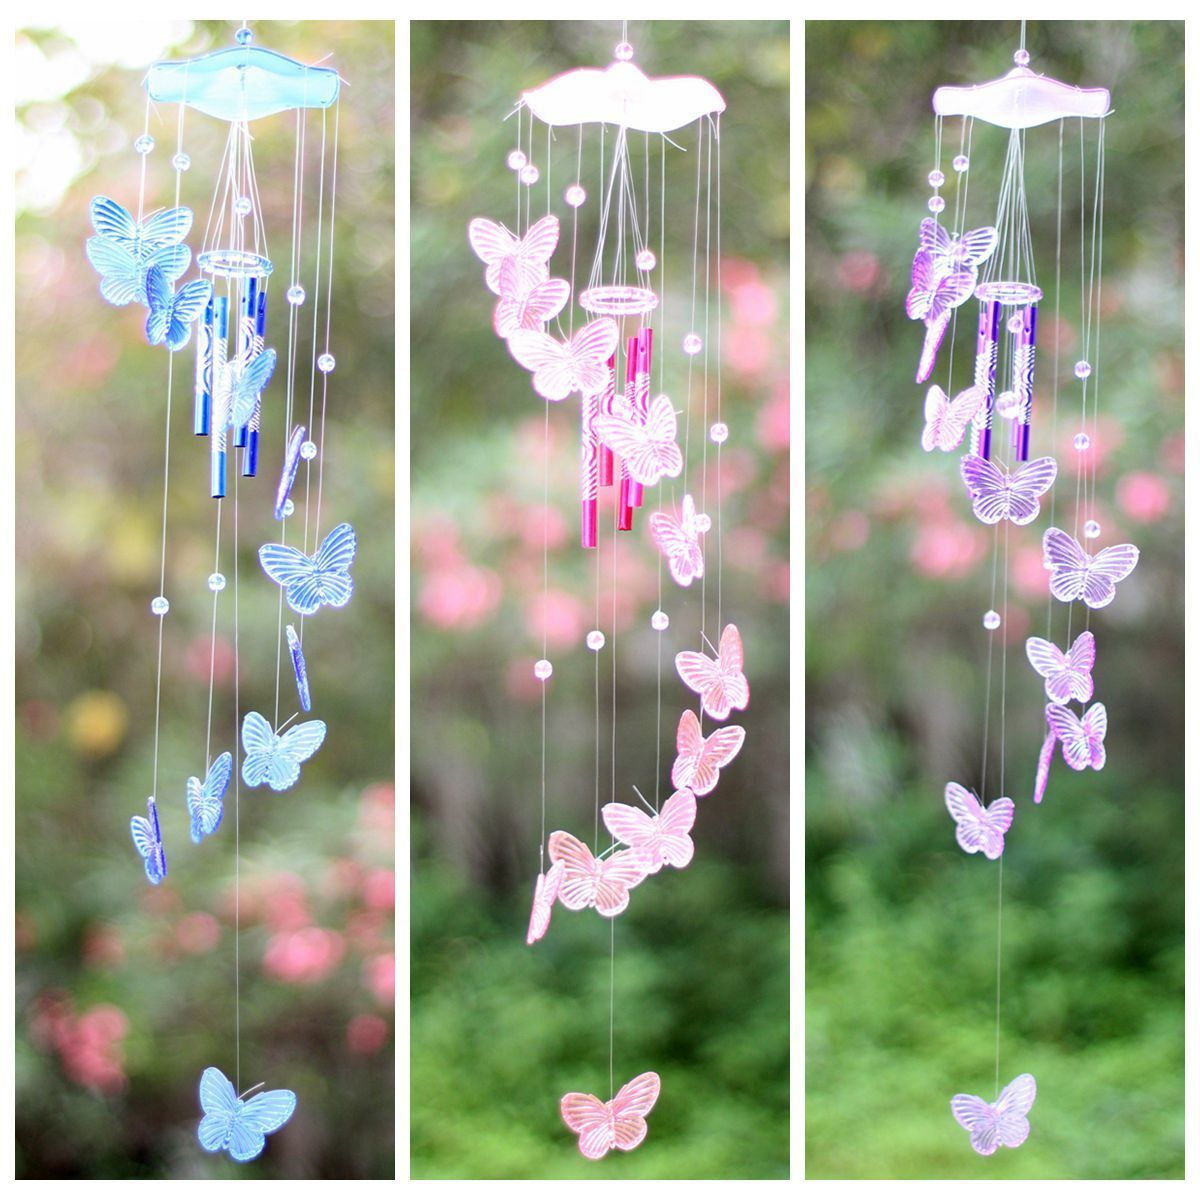 Crystal Erfly Wind Chime Bell Garden Ornament Gift Yard